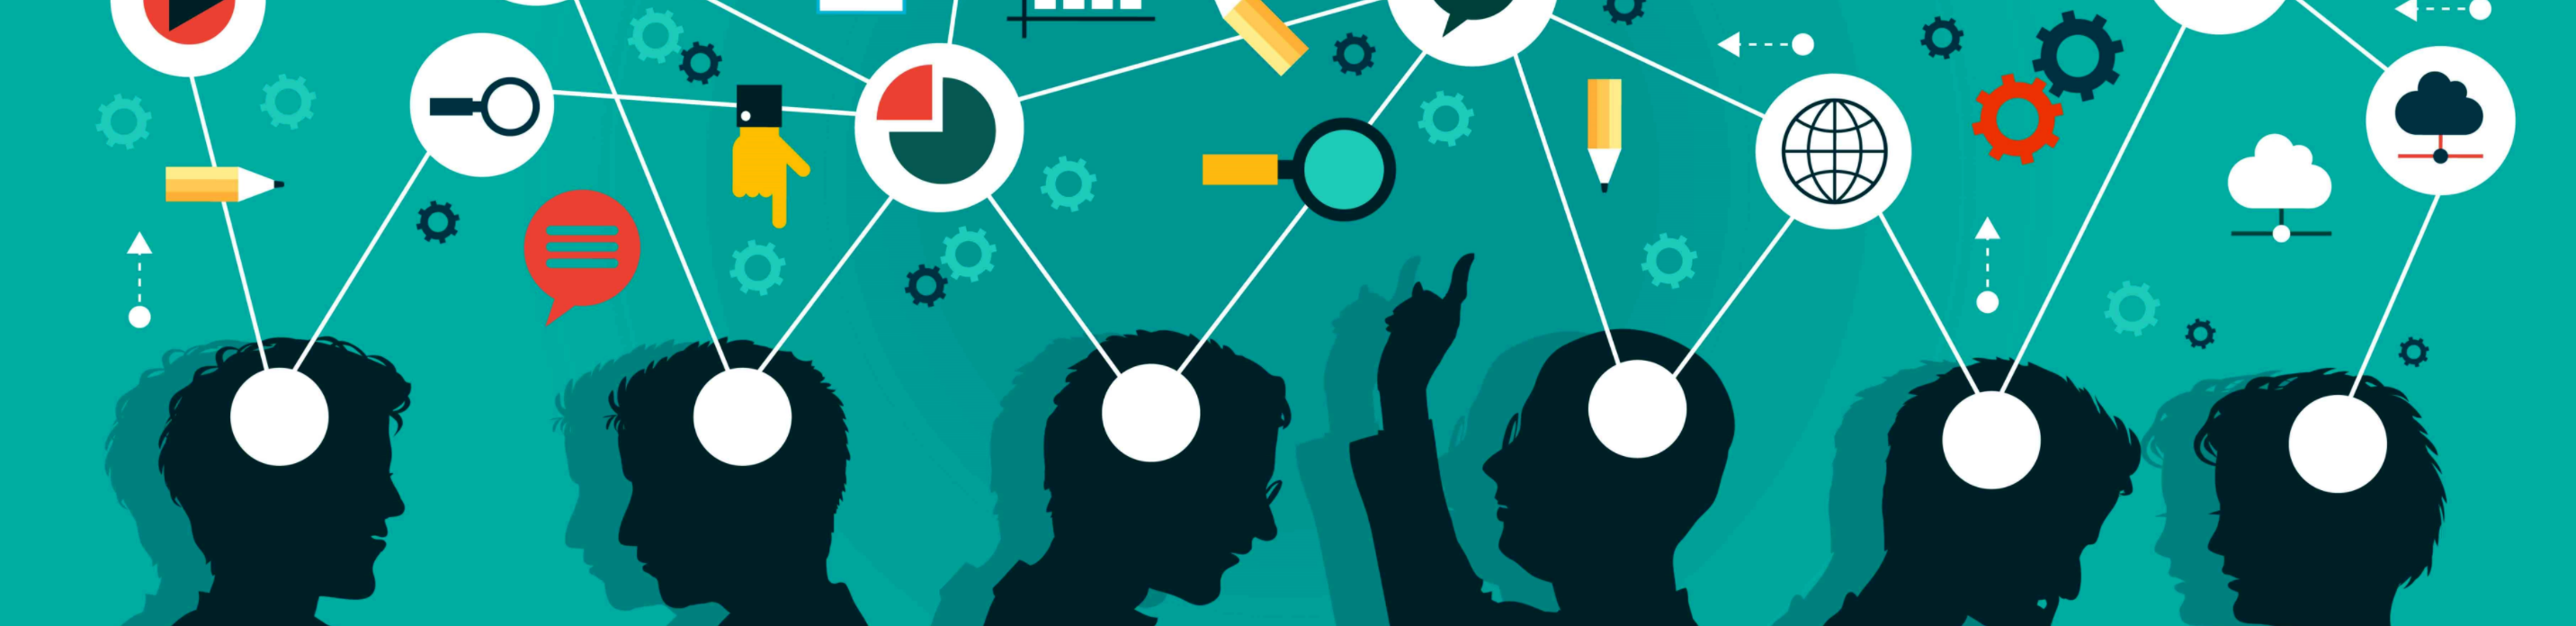 This is a banner image showing the silhouette of 6 people having ideas